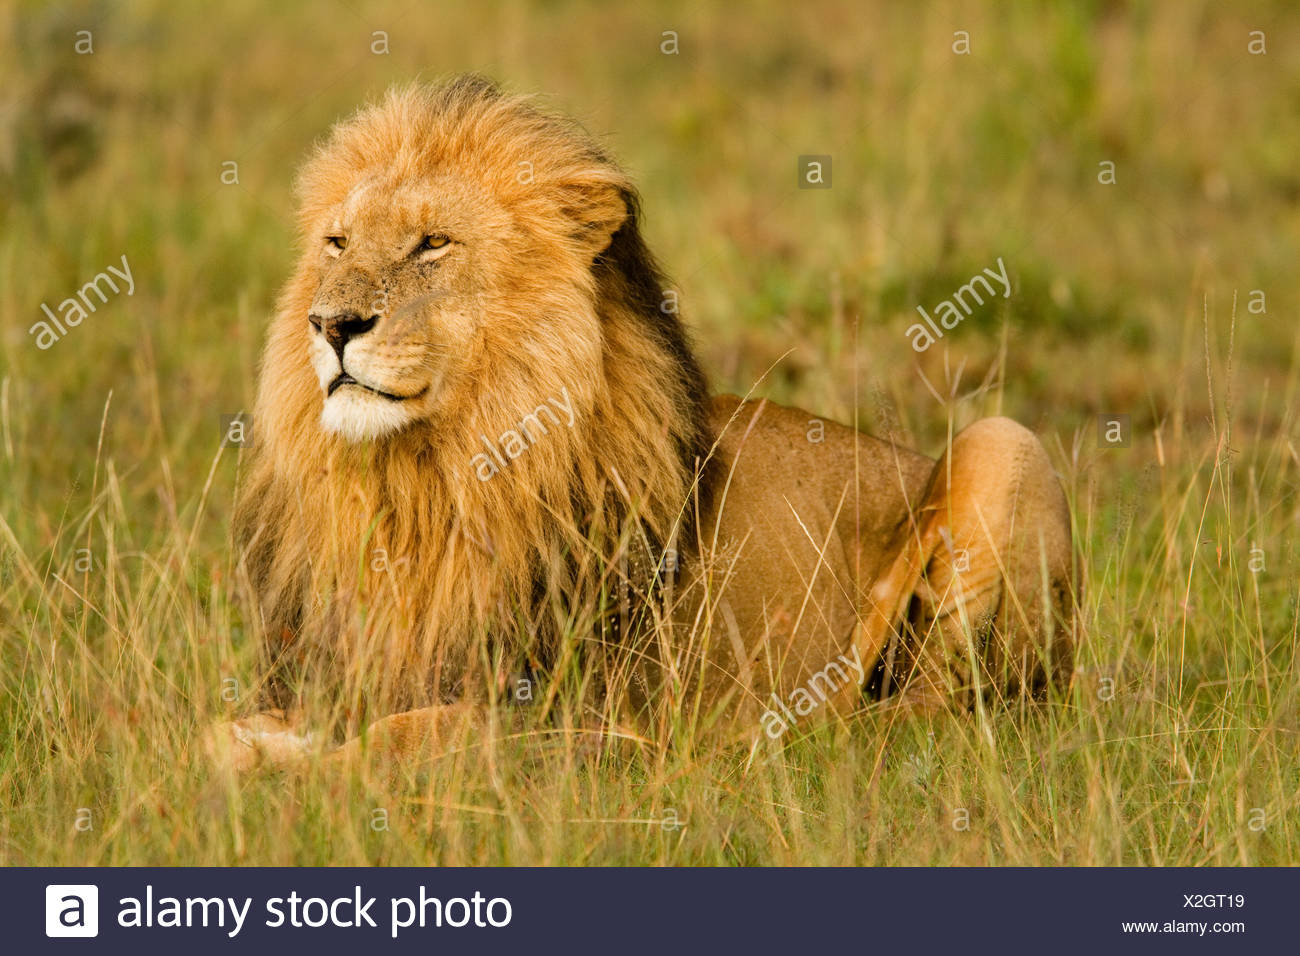 Lions keep an eye over their Masai Mara, Kenya domain. - Stock Image